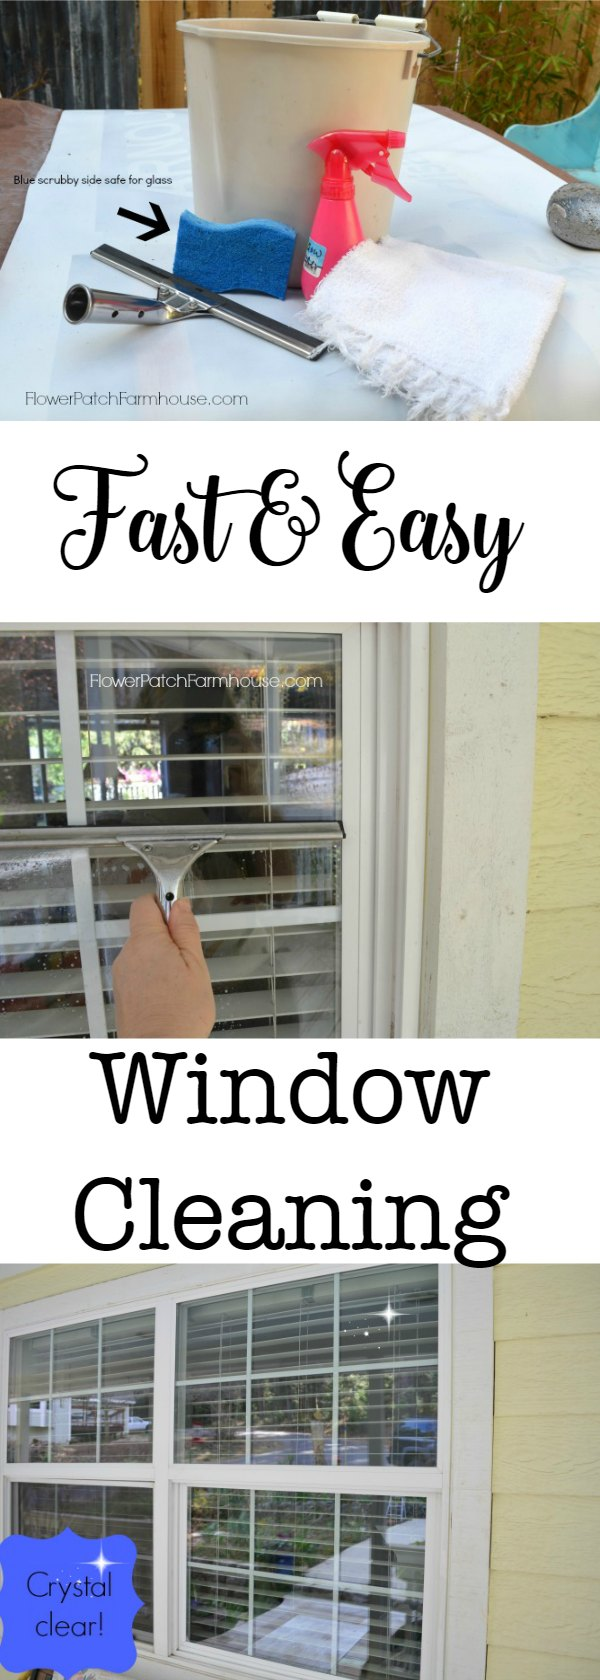 Window Cleaning Tips from a Pro, as a retired house cleaner I have tried many methods of cleaning windows. This is by far the fastest and easiest I used.